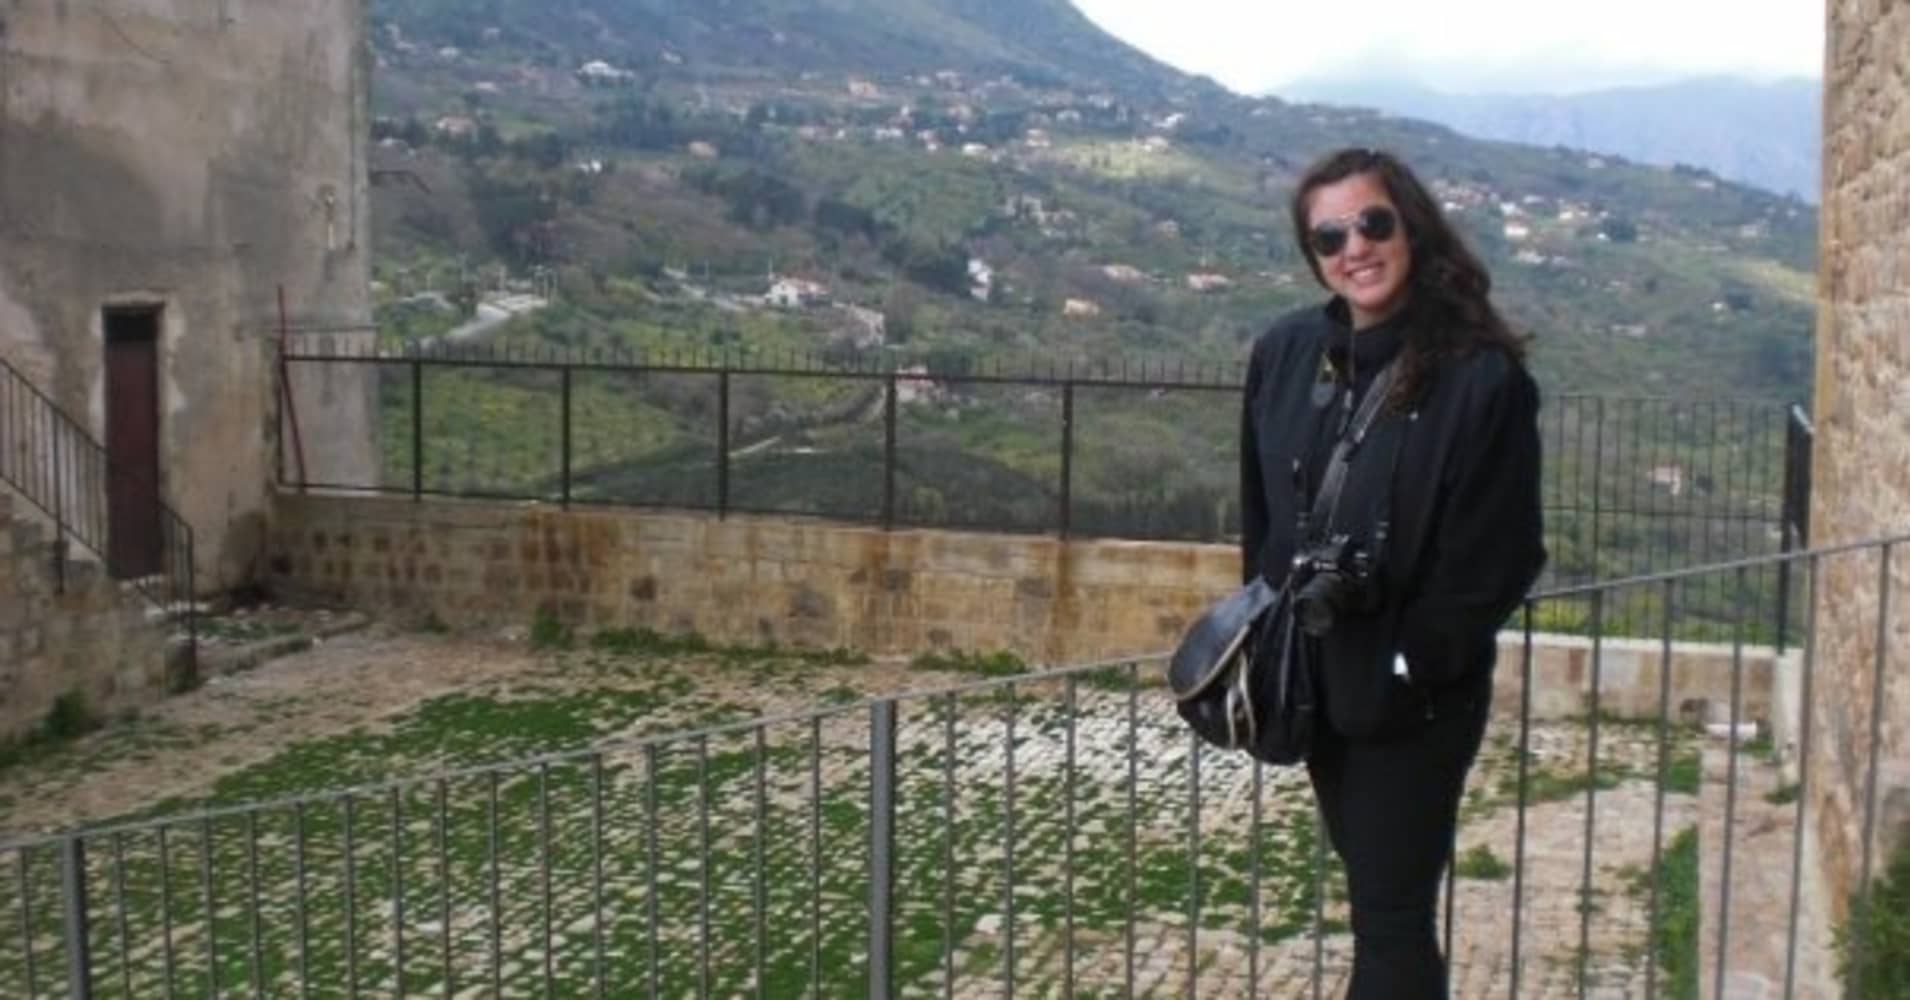 The author in 2009 on a university trip to Italy